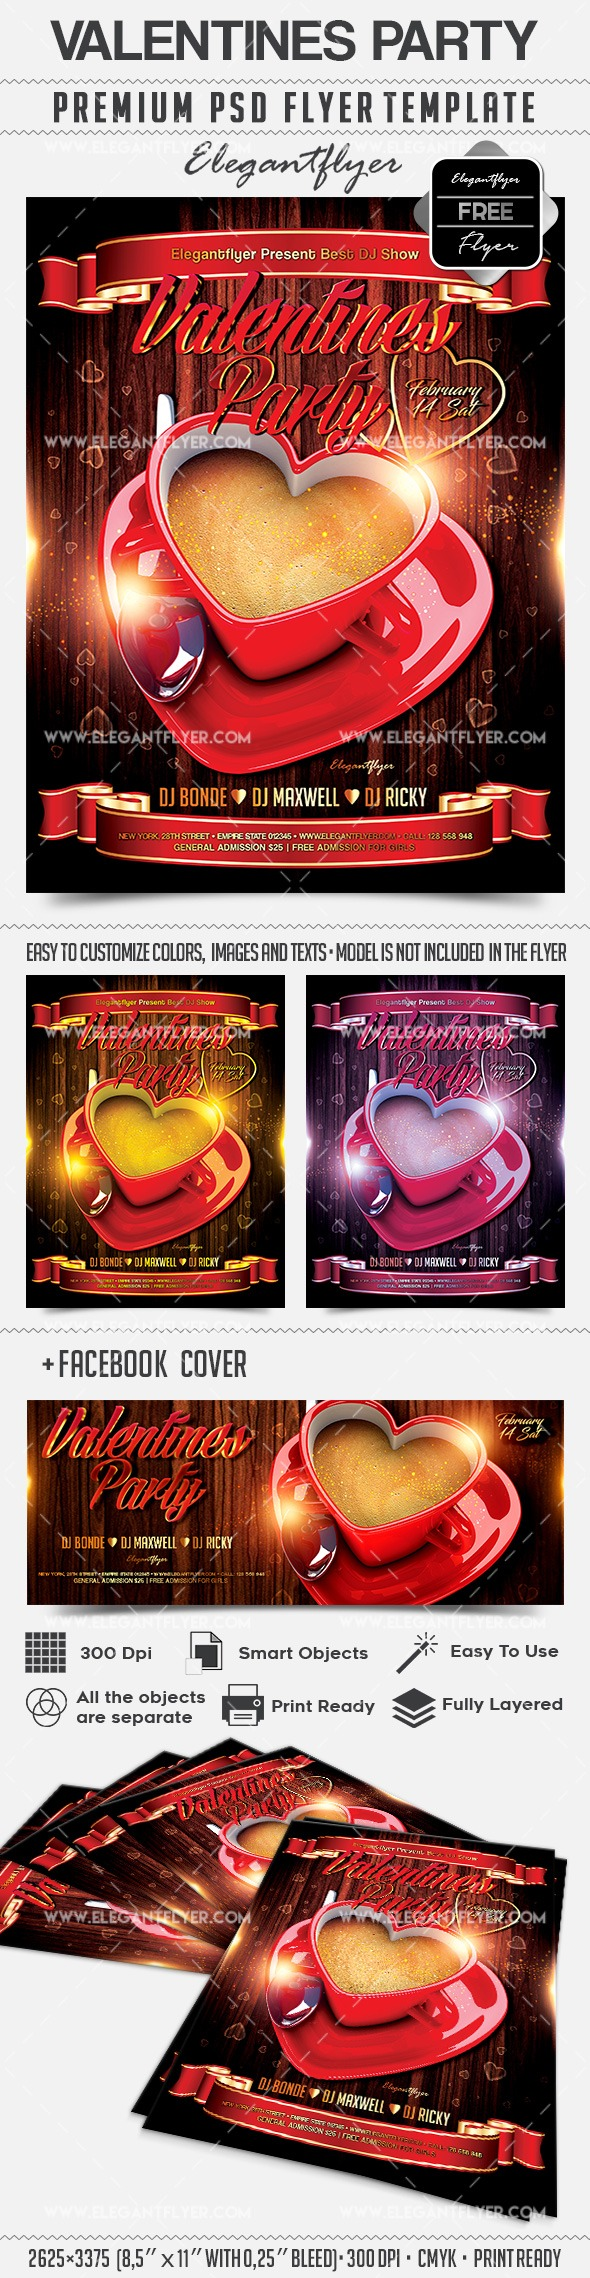 Valentines Party – Free Flyer PSD Template + Facebook Cover